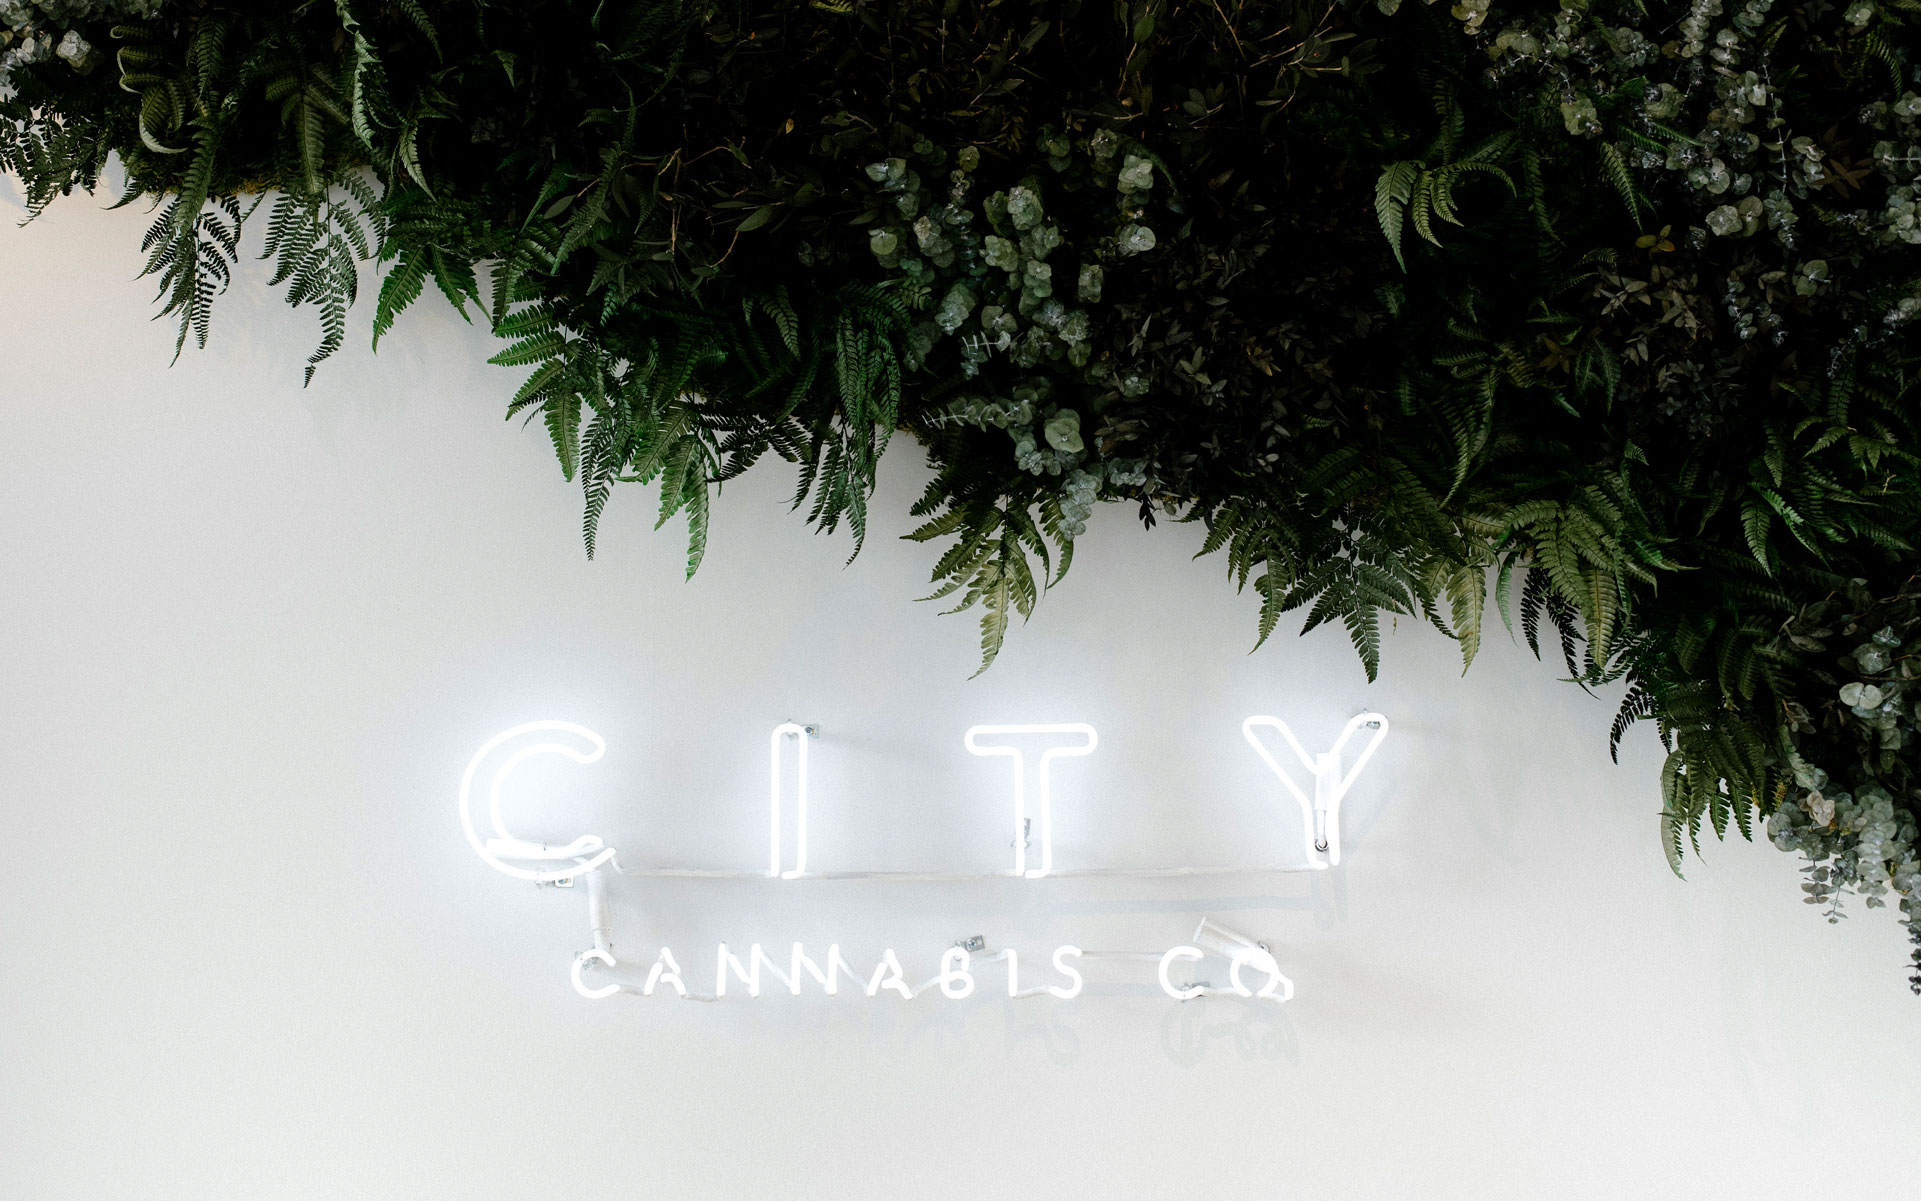 city cannabis co. fraser